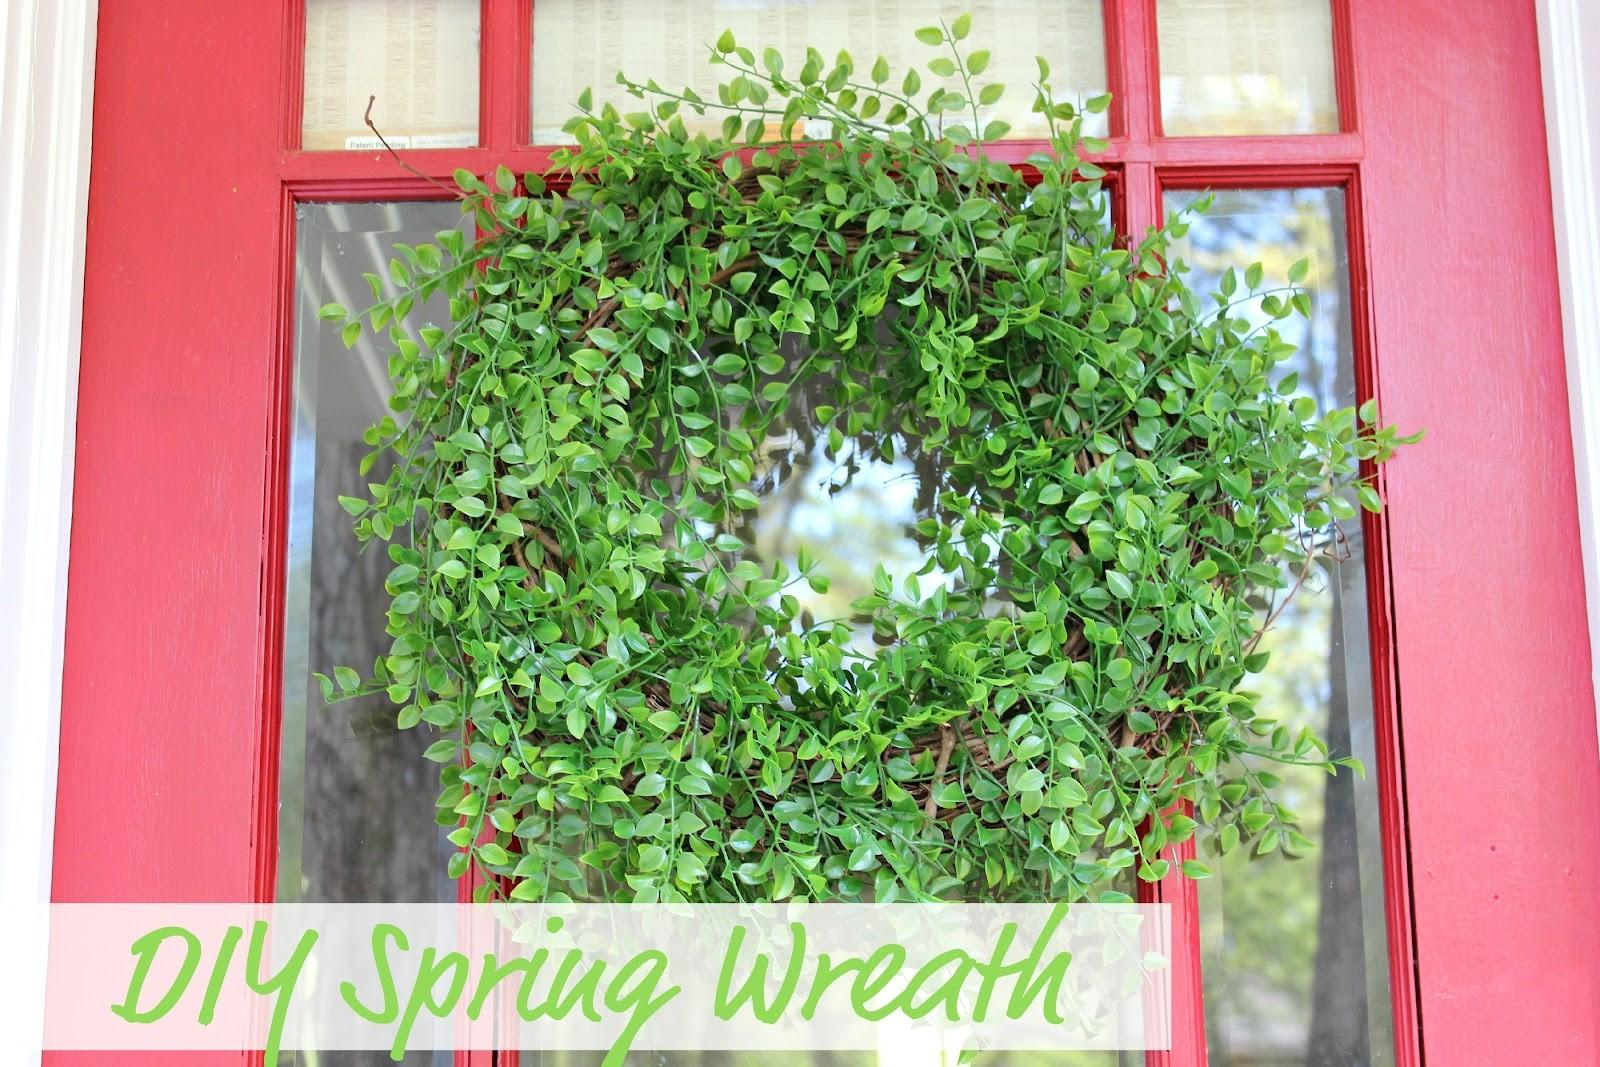 Ten June Diy Spring Wreath